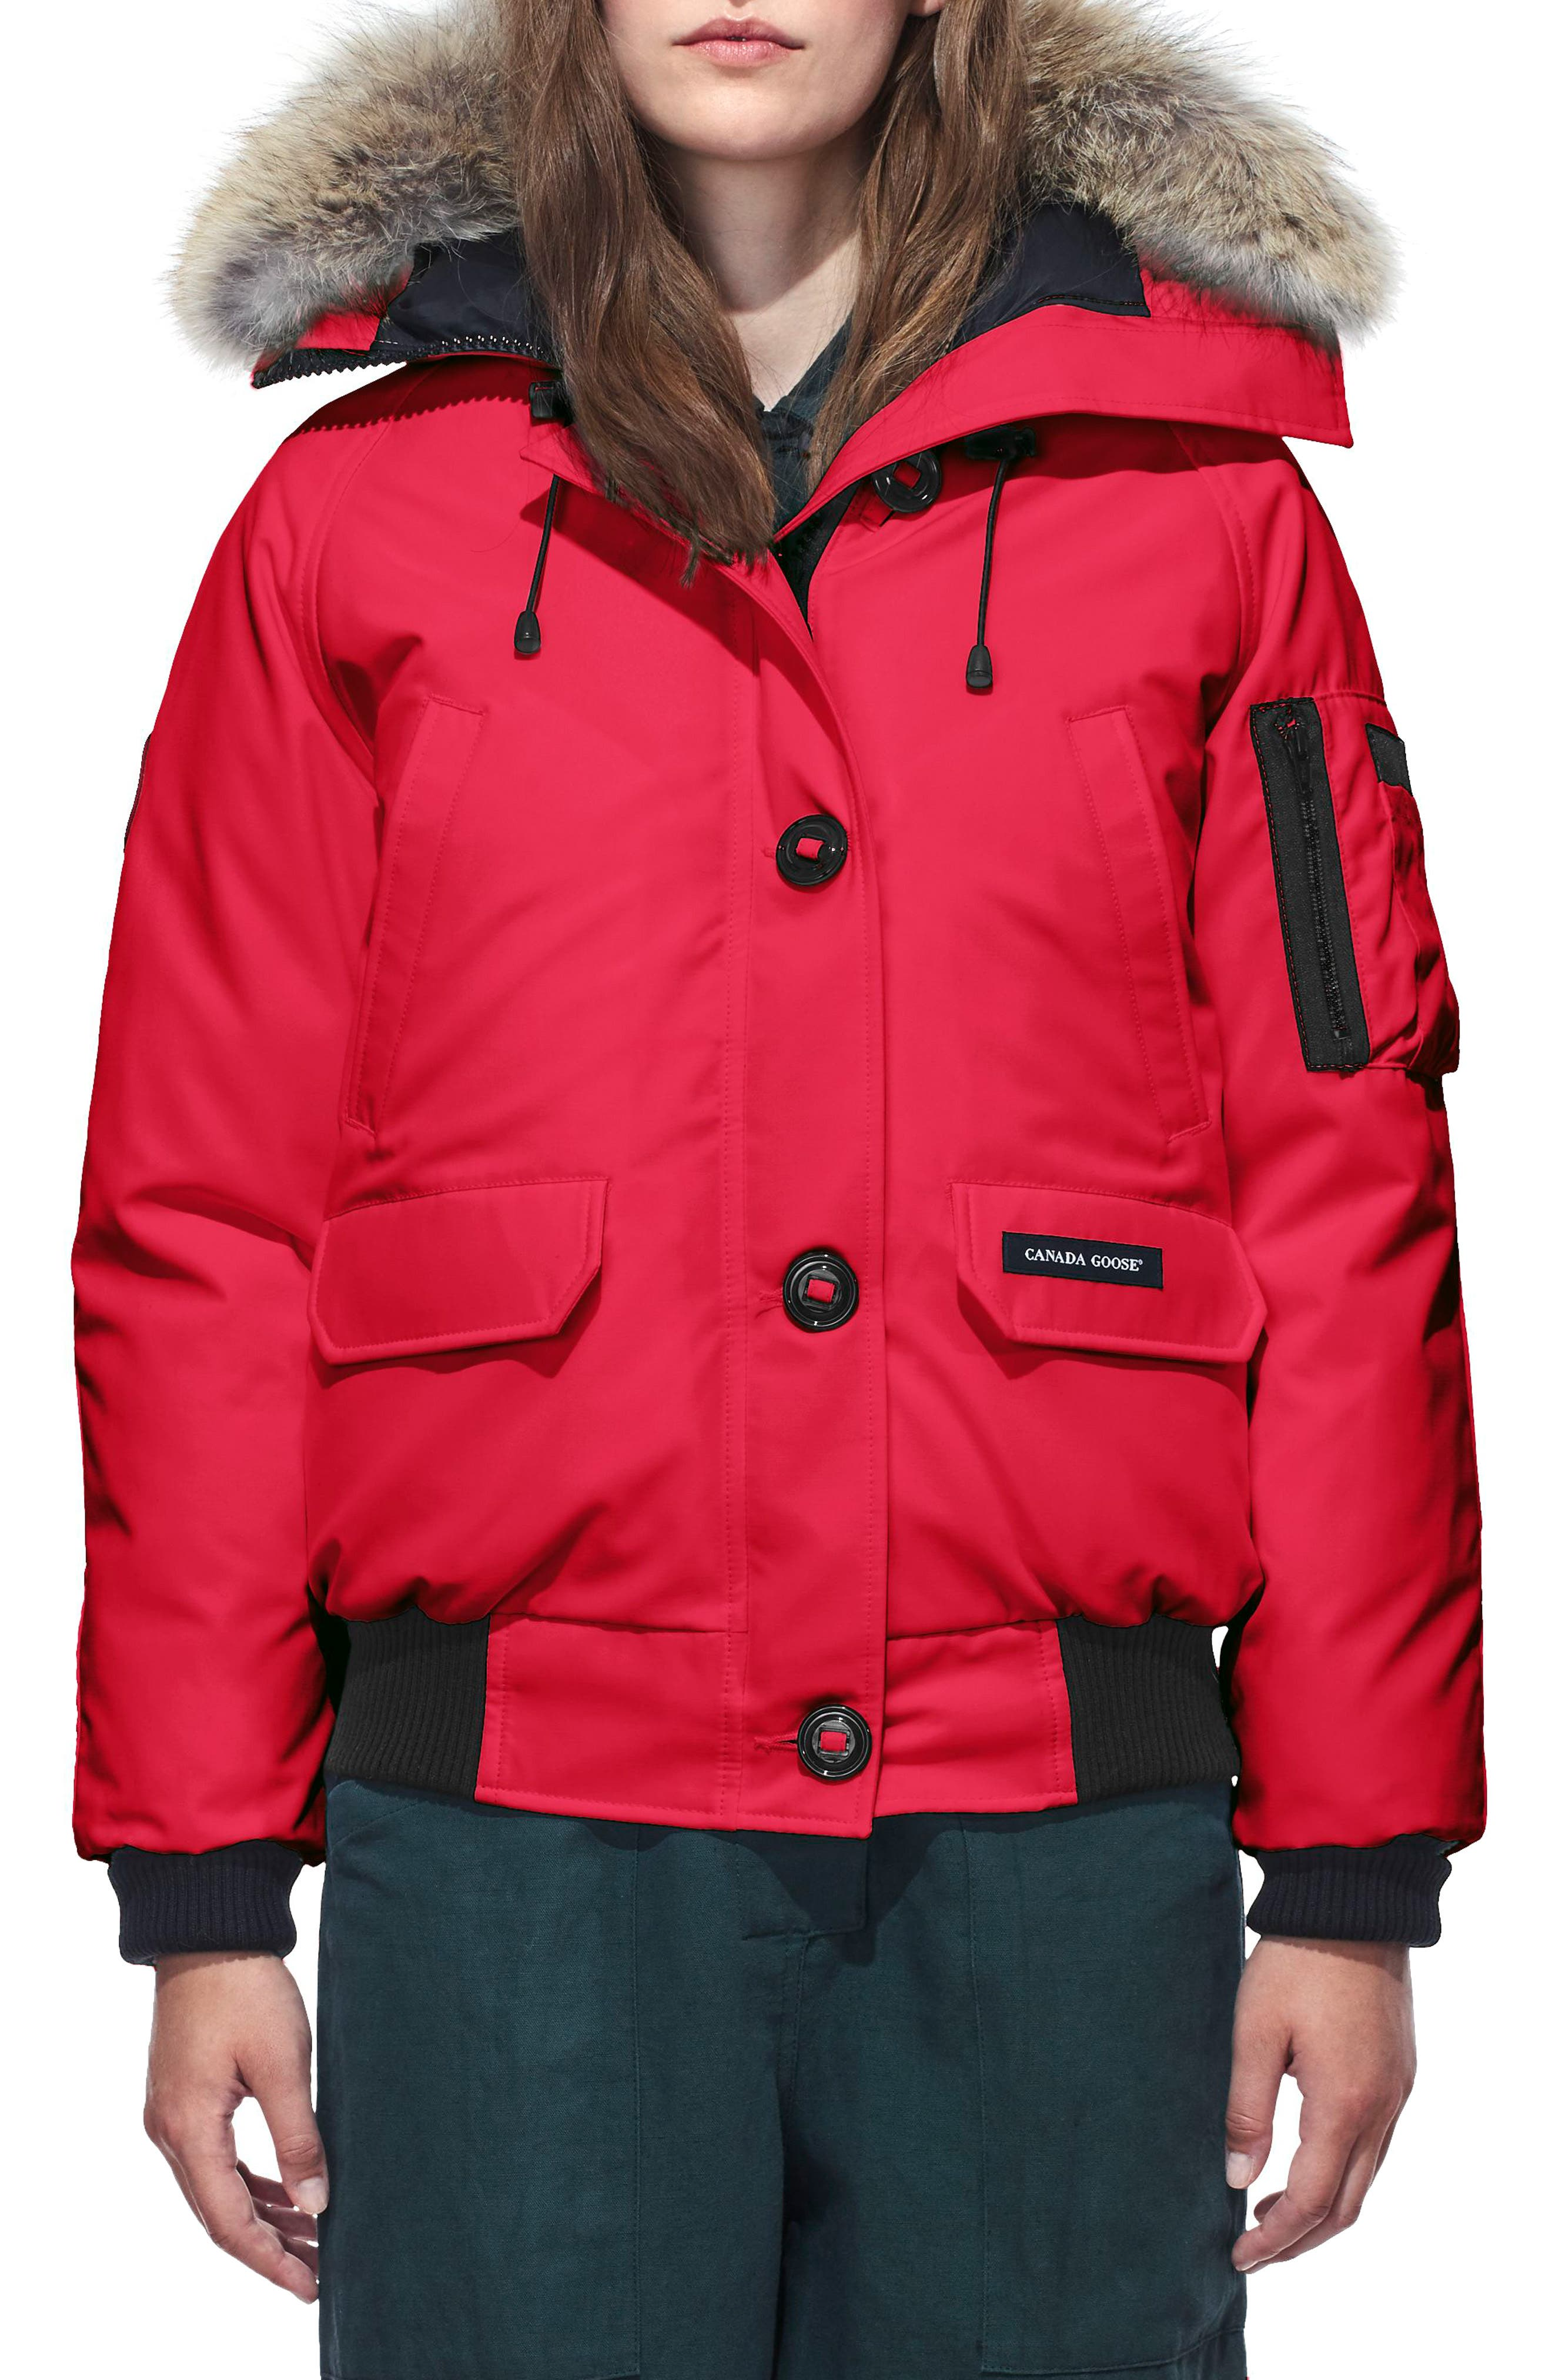 Canada Goose Chilliwack Hooded Down Bomber Jacket With Genuine Coyote Fur Trim, (0) - Red